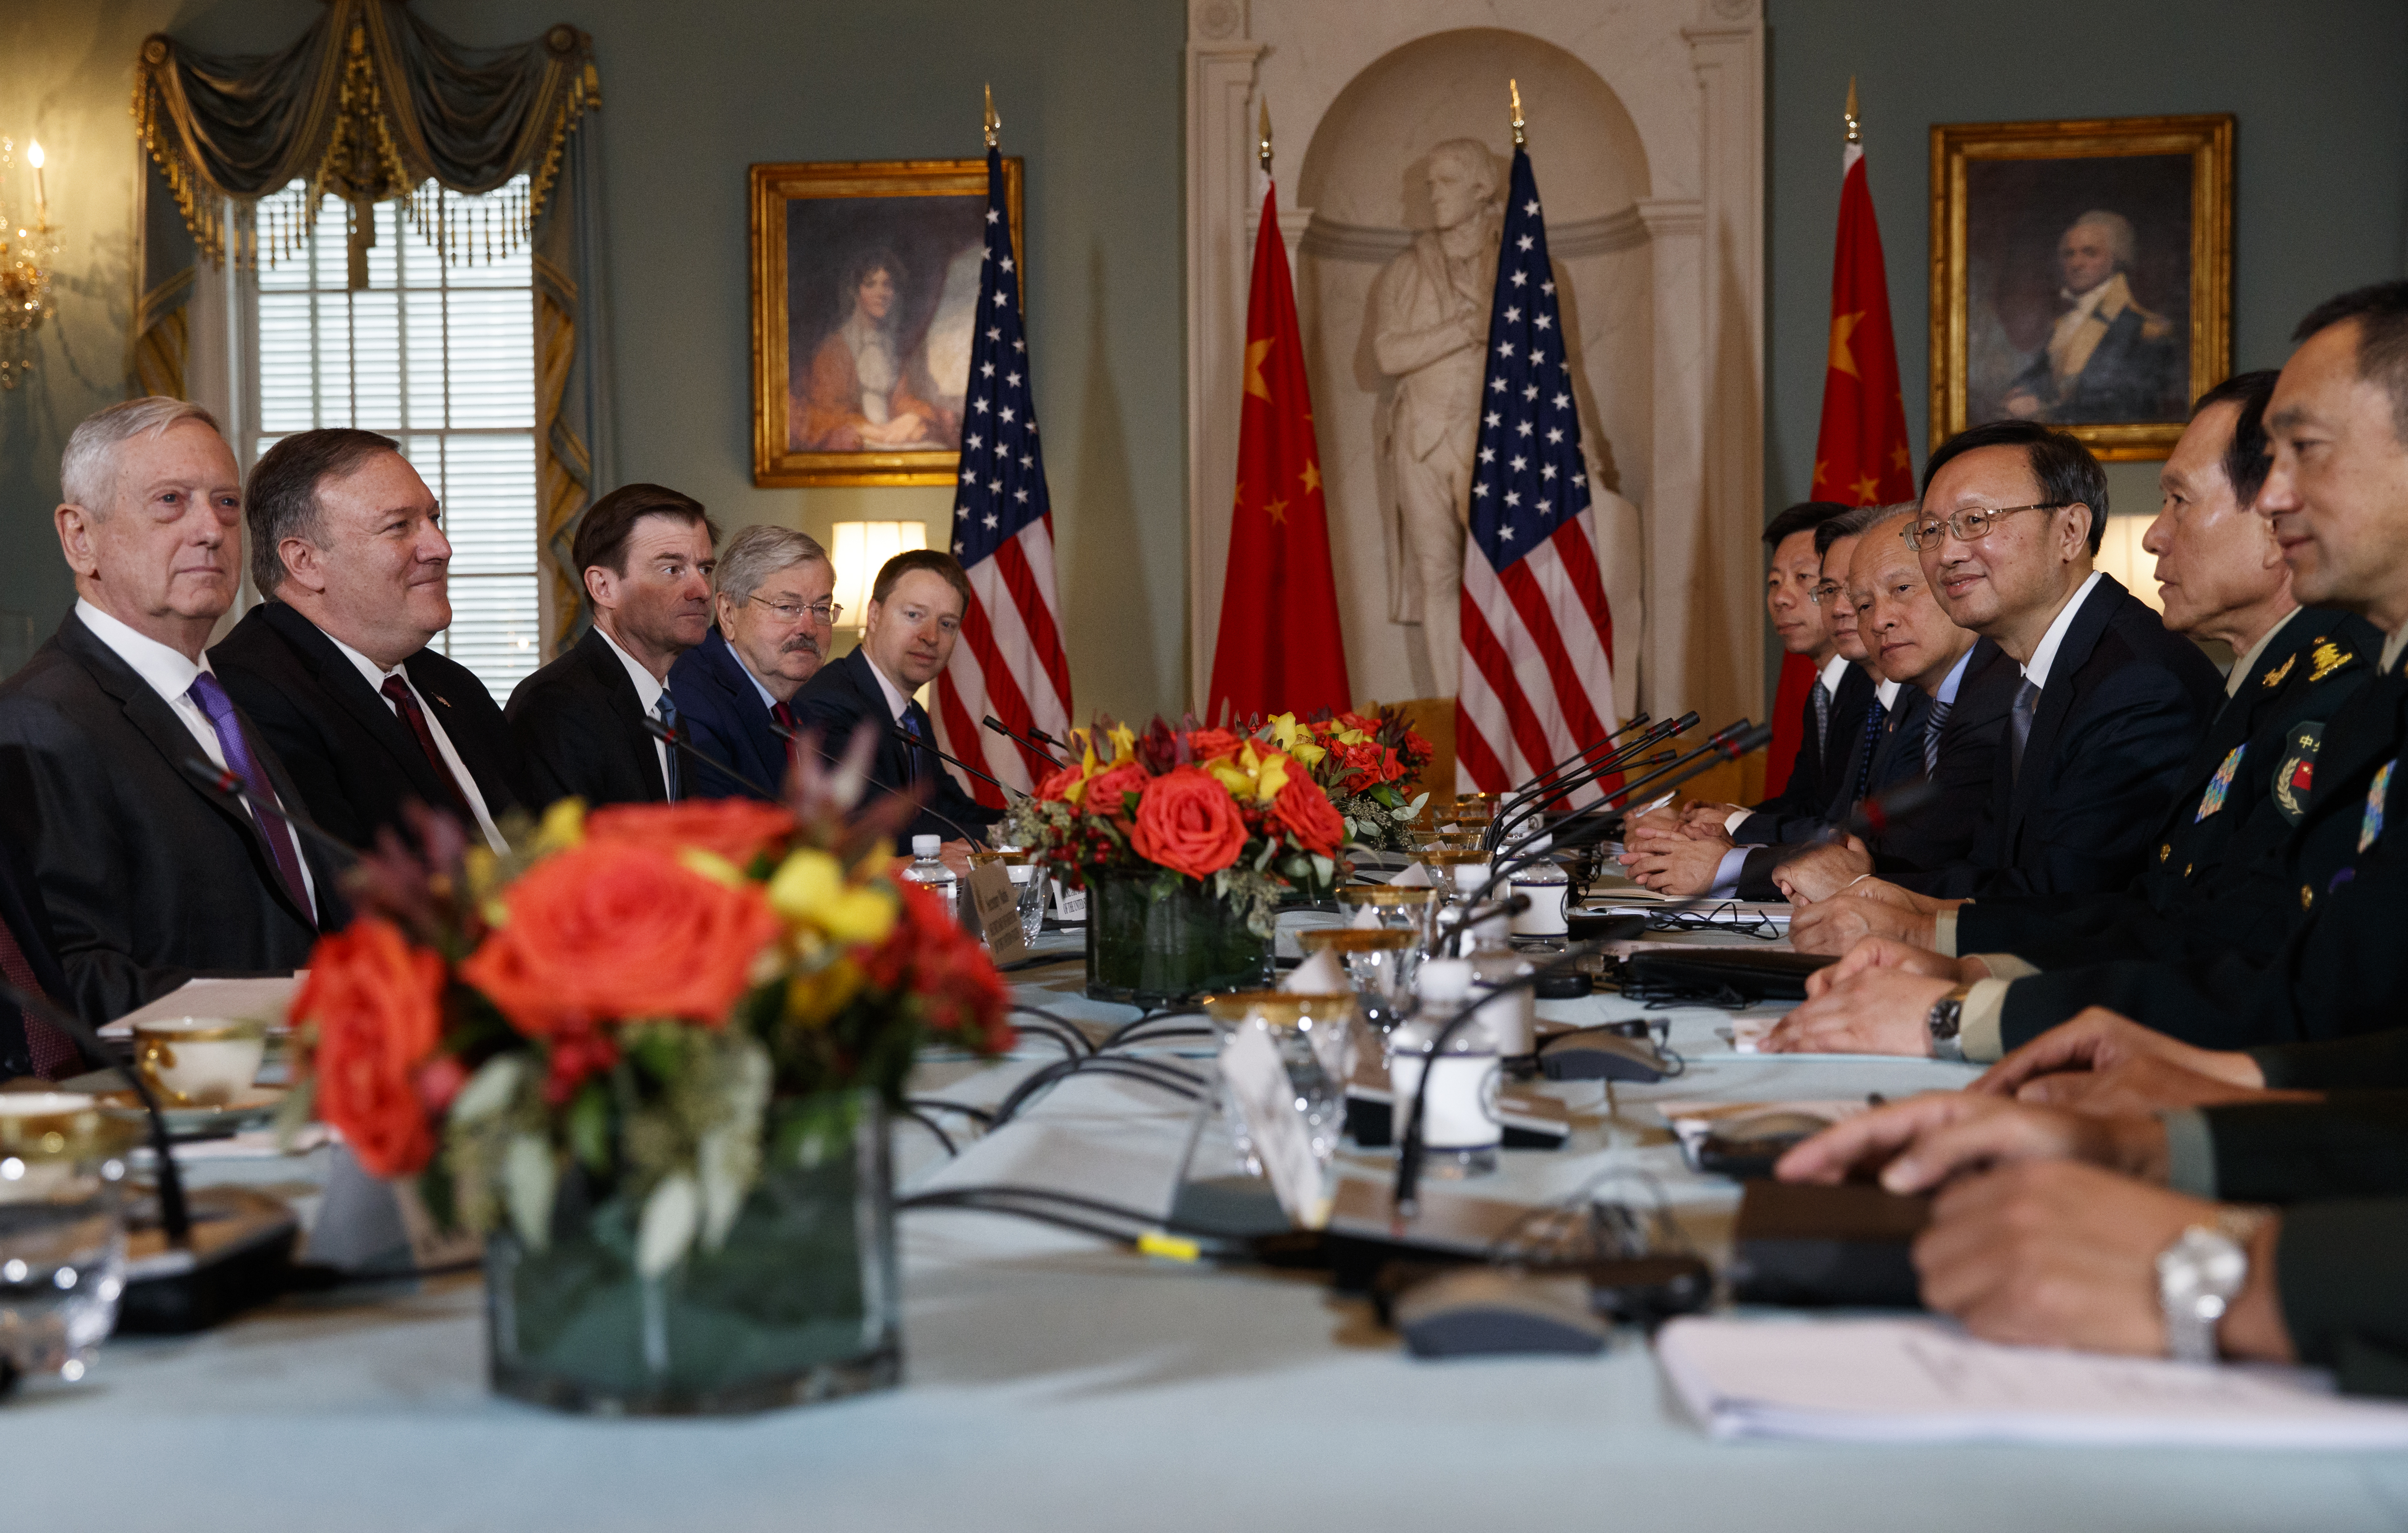 Secretary of Defense Jim Mattis, left, Secretary of State Mike Pompeo, second from left, Chinese Politburo member Yang Jiechi, third from right, and Chinese State Councilor and Defense Minister Gen. Wei Fenghe, second from right, meet at the State De...